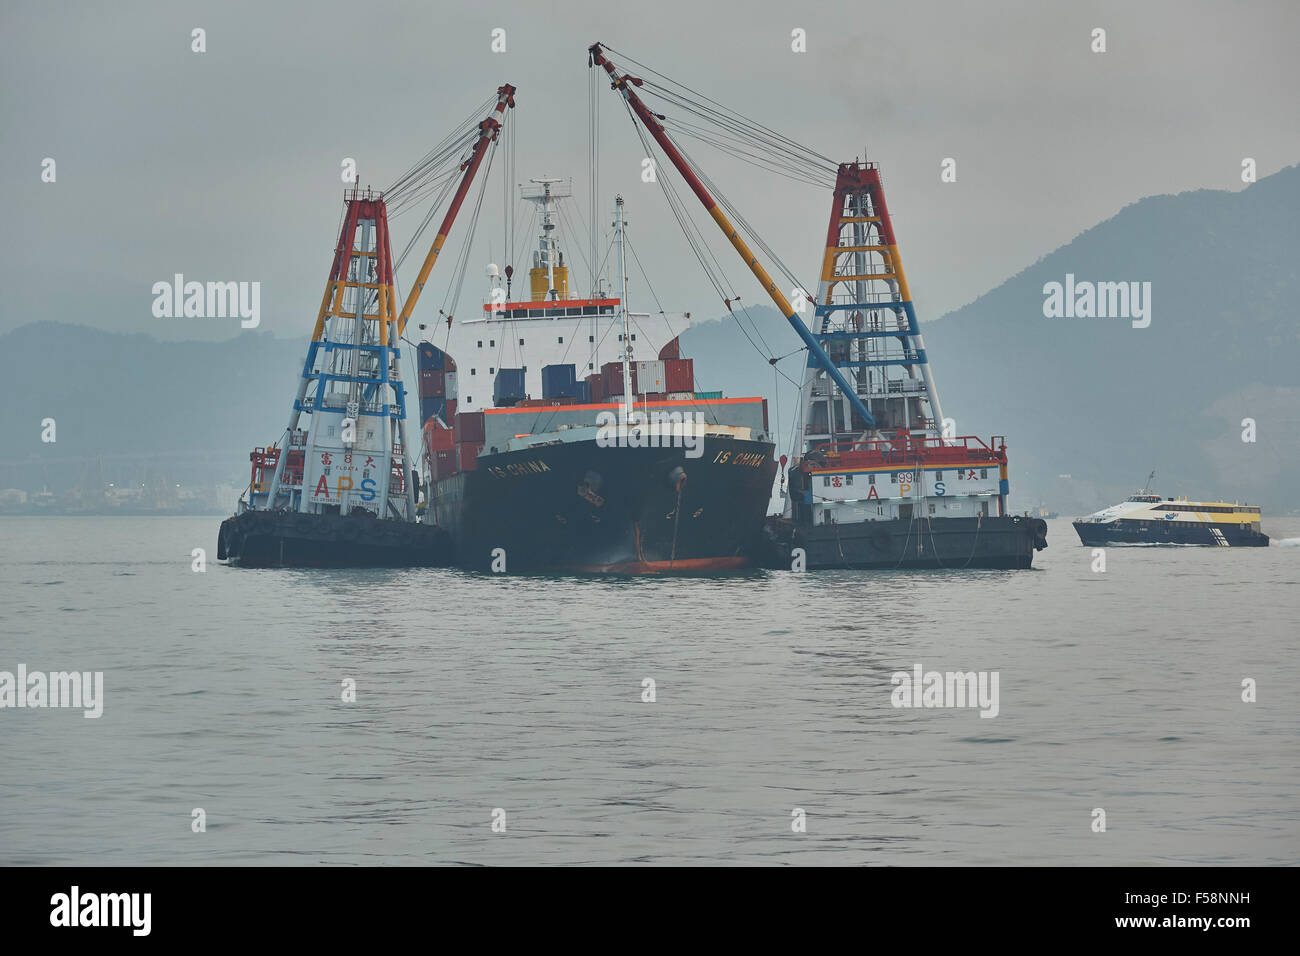 Loading / Unloading Shipping Containers In Hong Kong Waters. - Stock Image